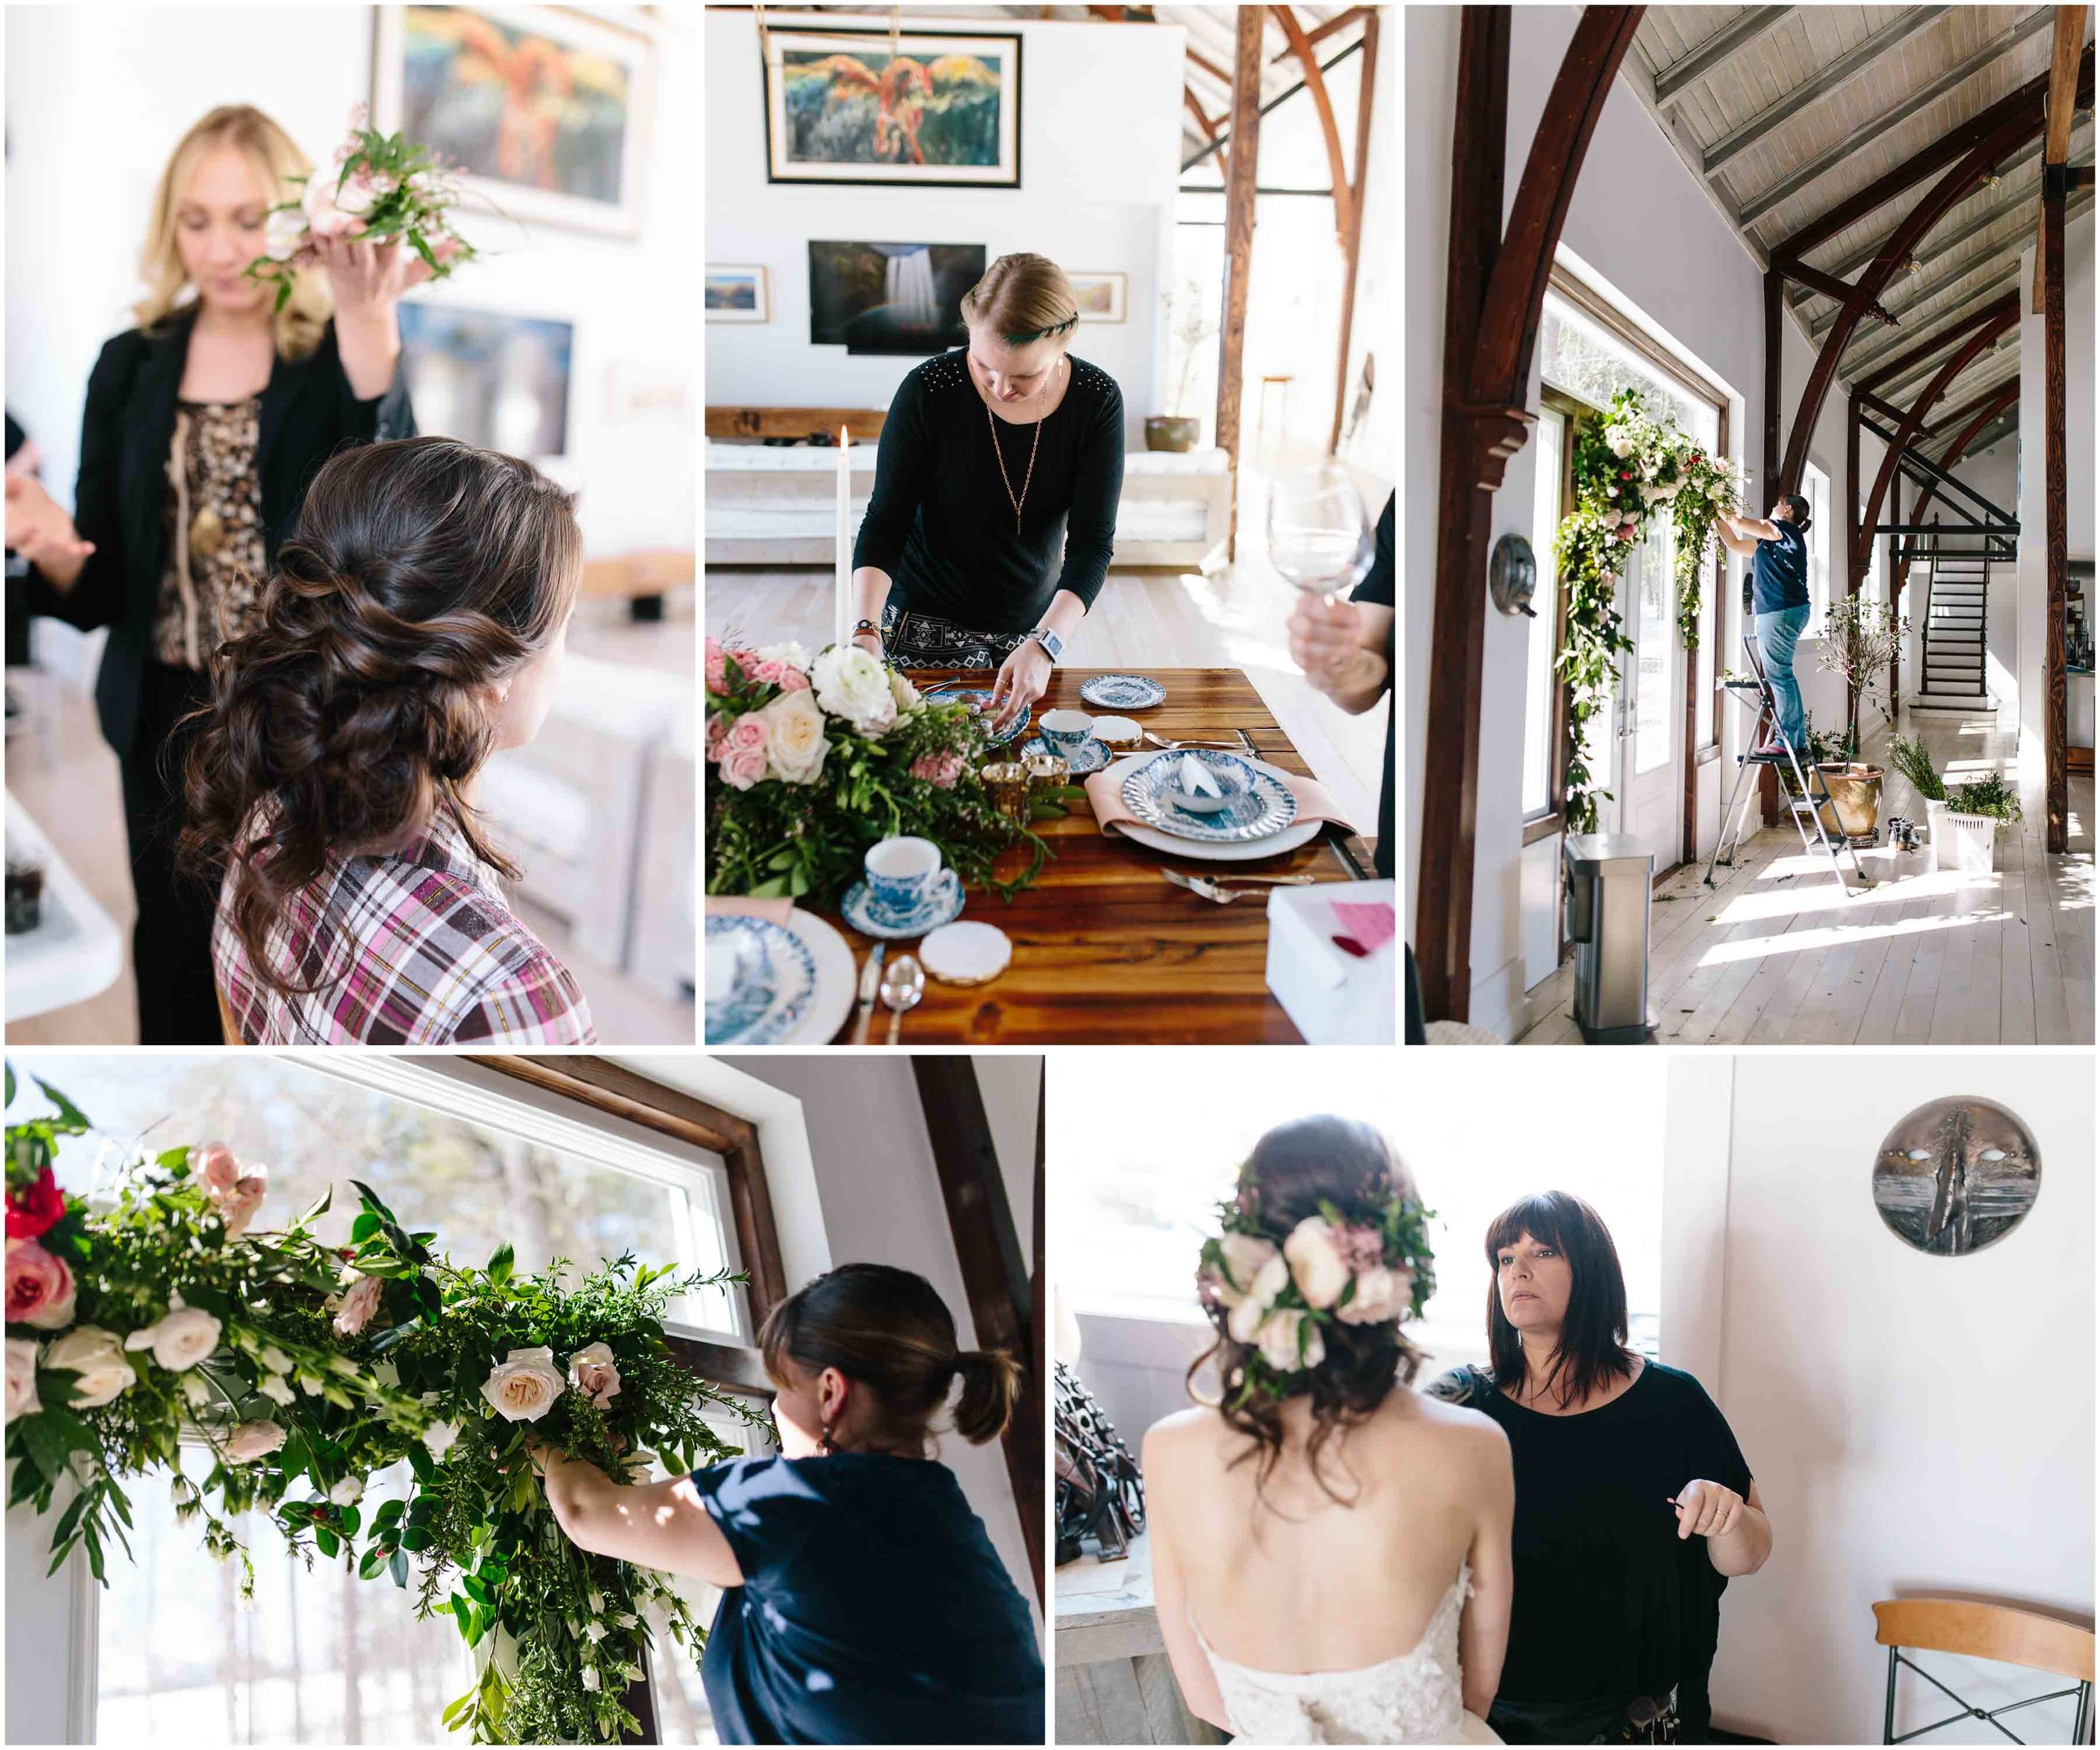 Intimate and romantic styled wedding photography in Lee, Massachusetts in the Berkshires - flowers, hair, and makeup